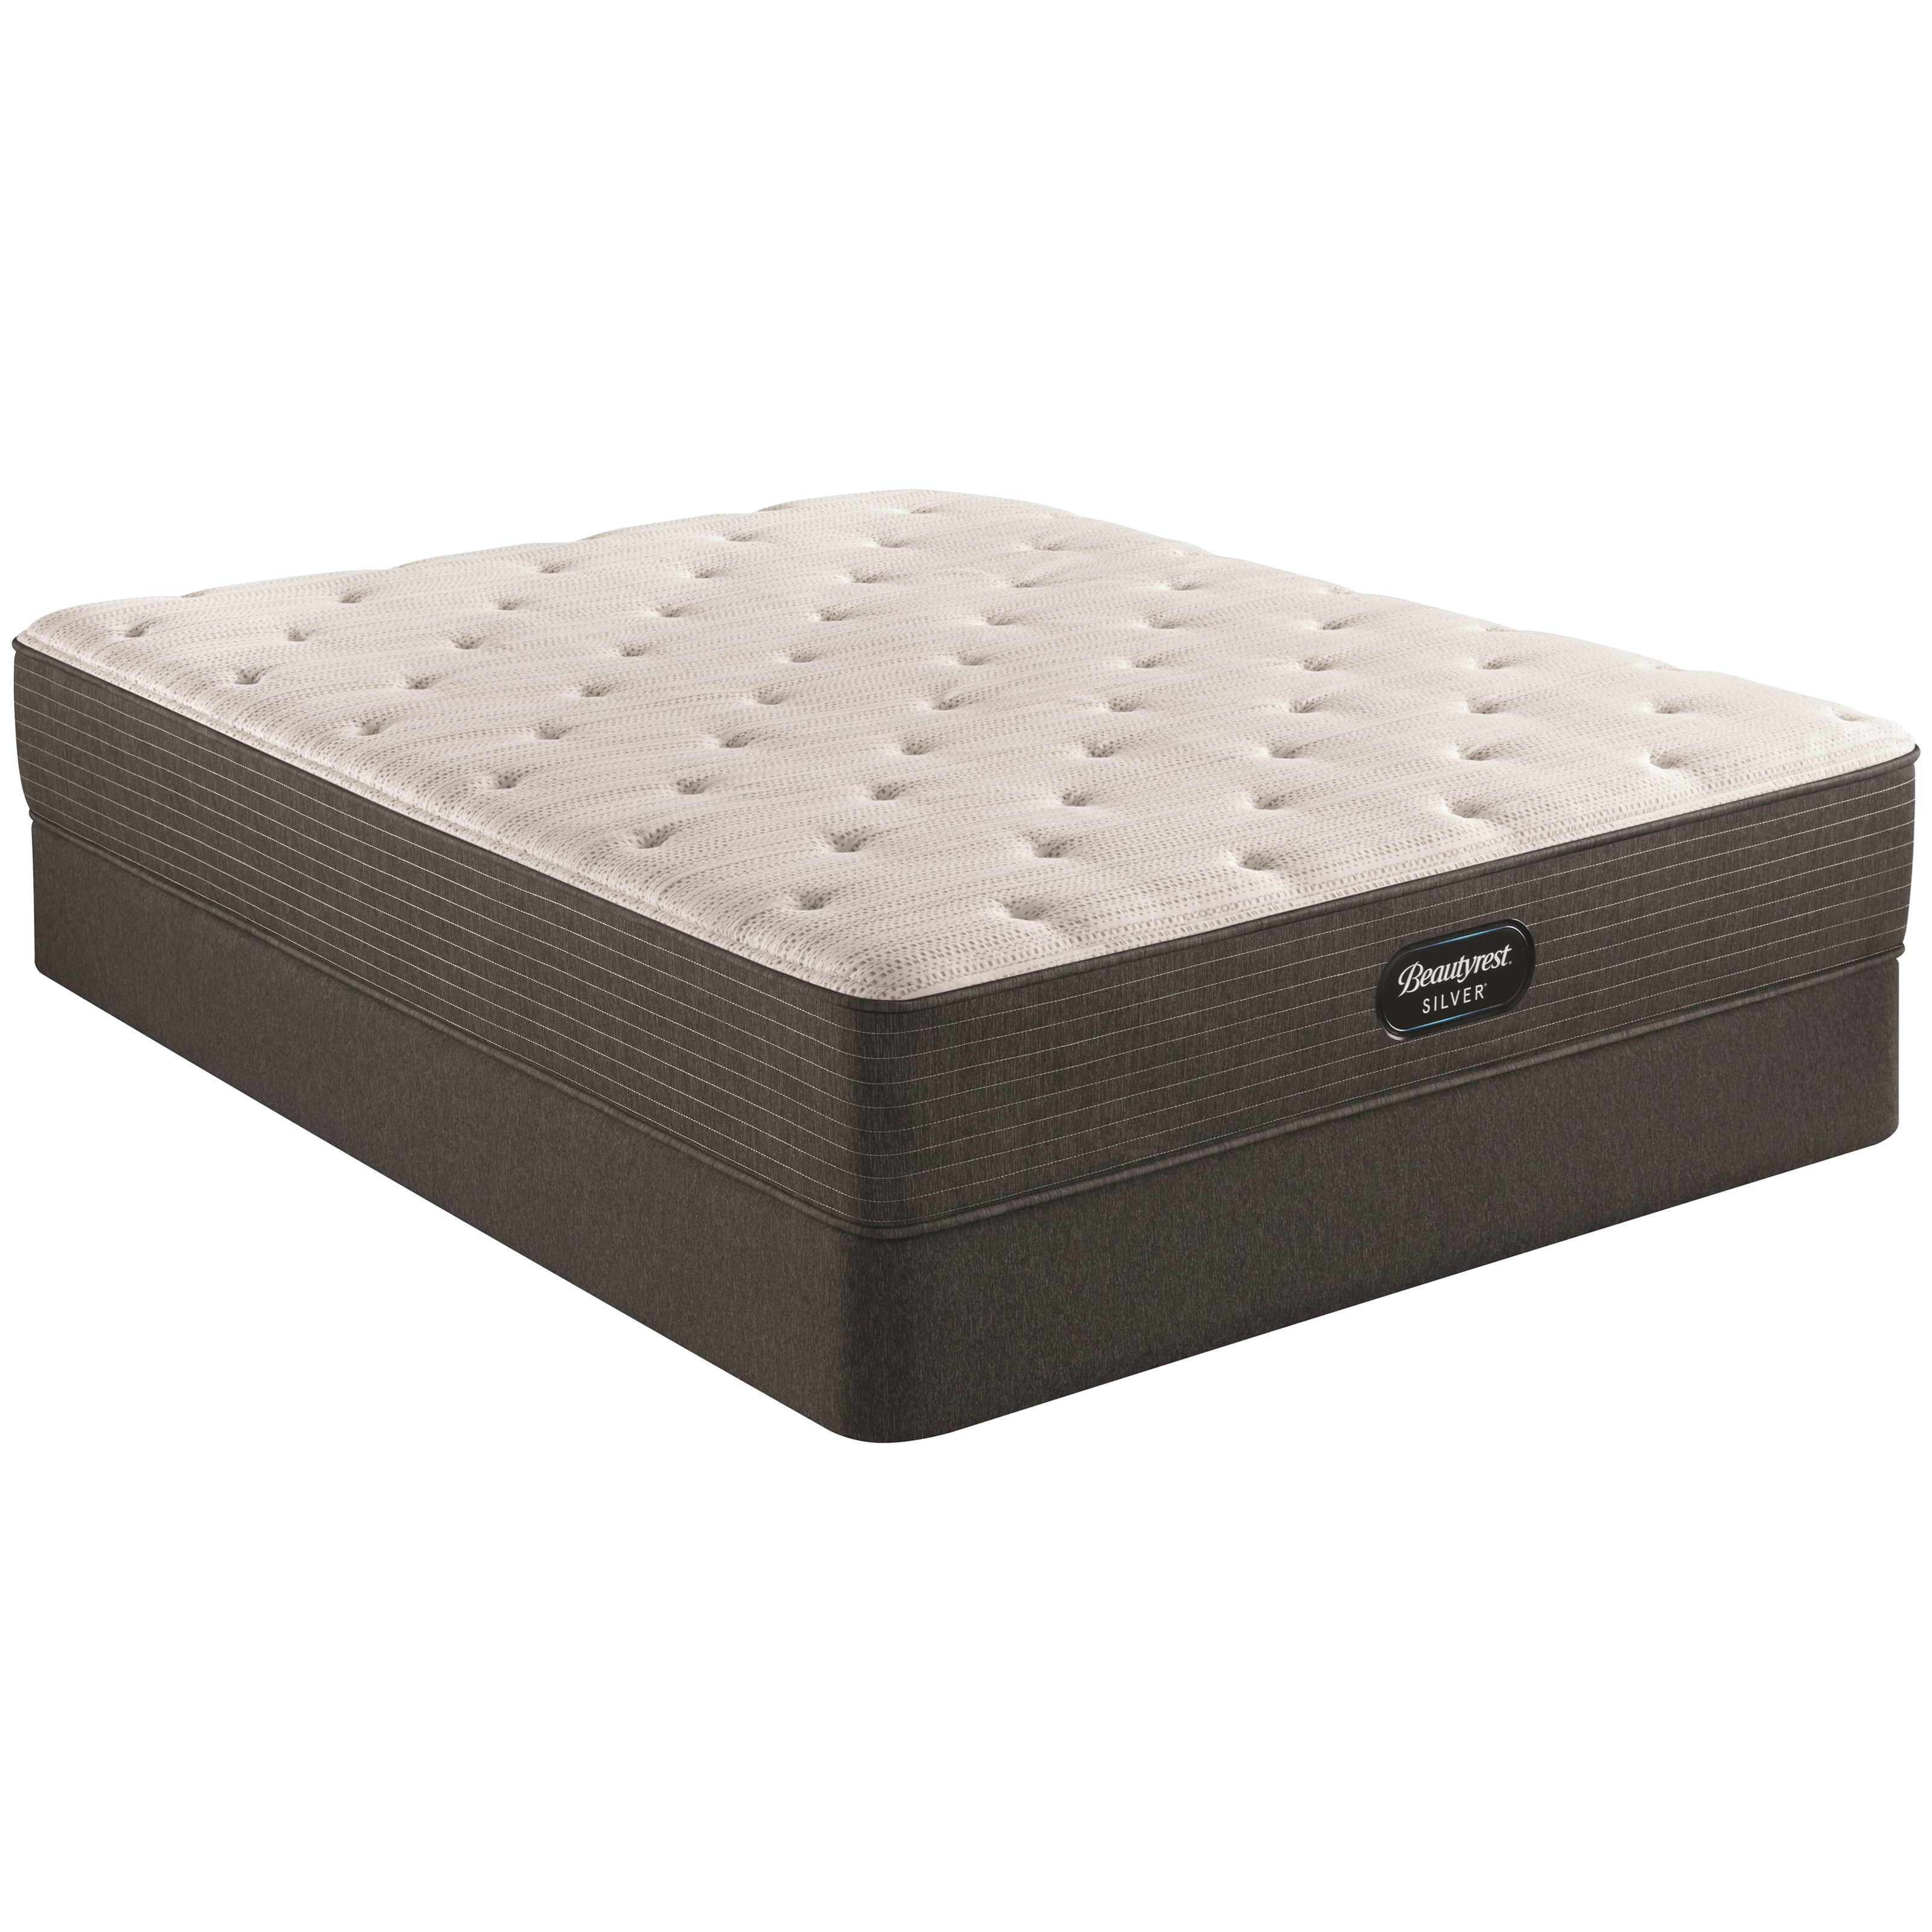 "Bold Medium Firm  Twin XL 11 3/4"" Pocketed Coil Mattress Set by Beautyrest at Becker Furniture"